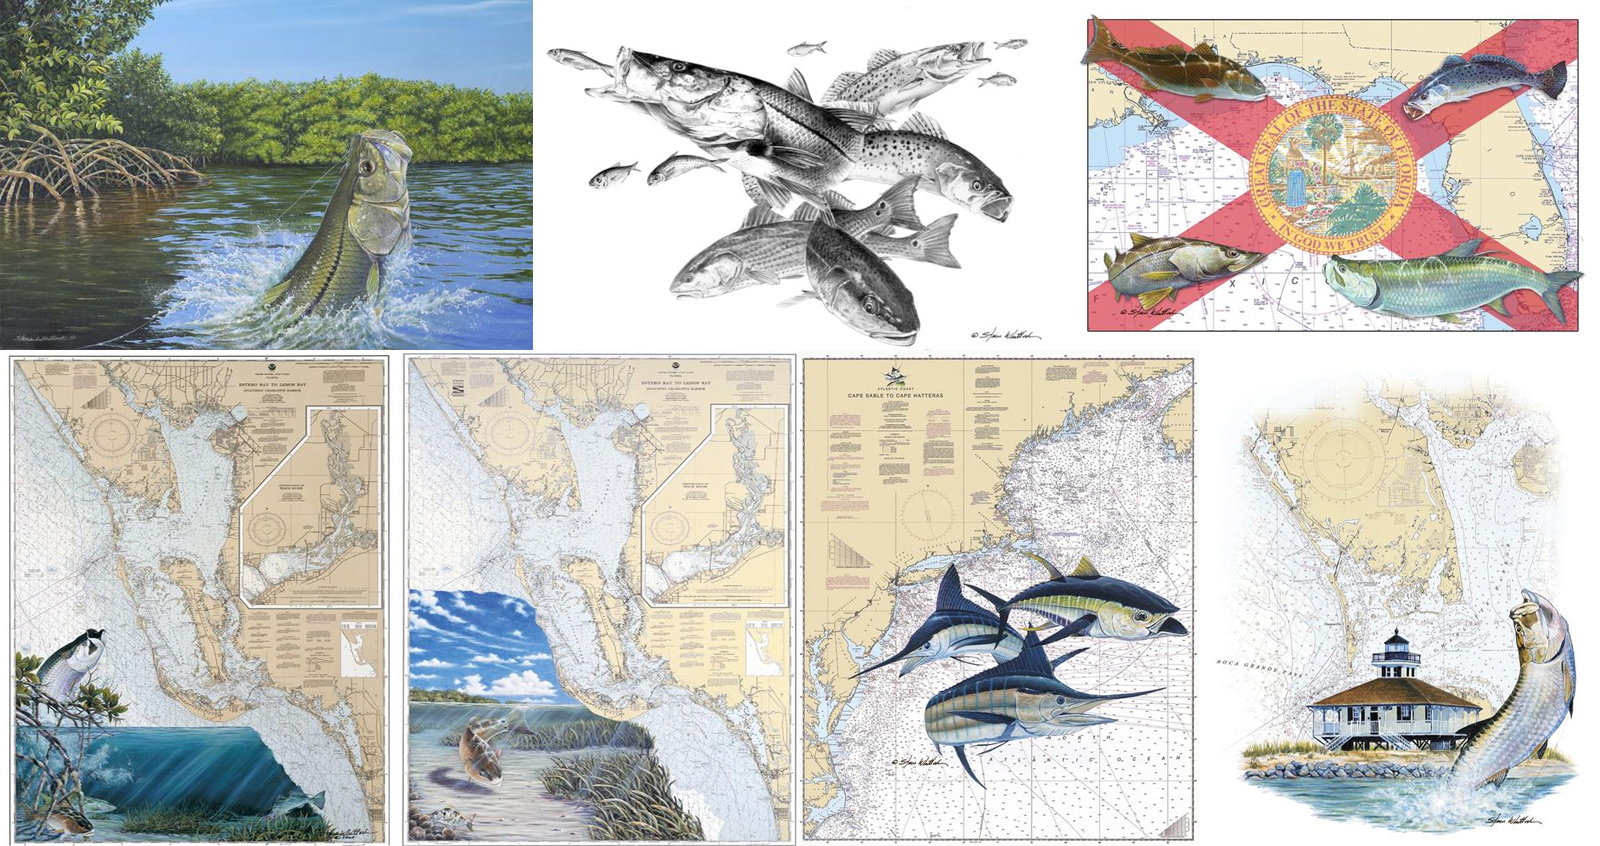 Game fish chart art paintings with snook and tarpon in Florida